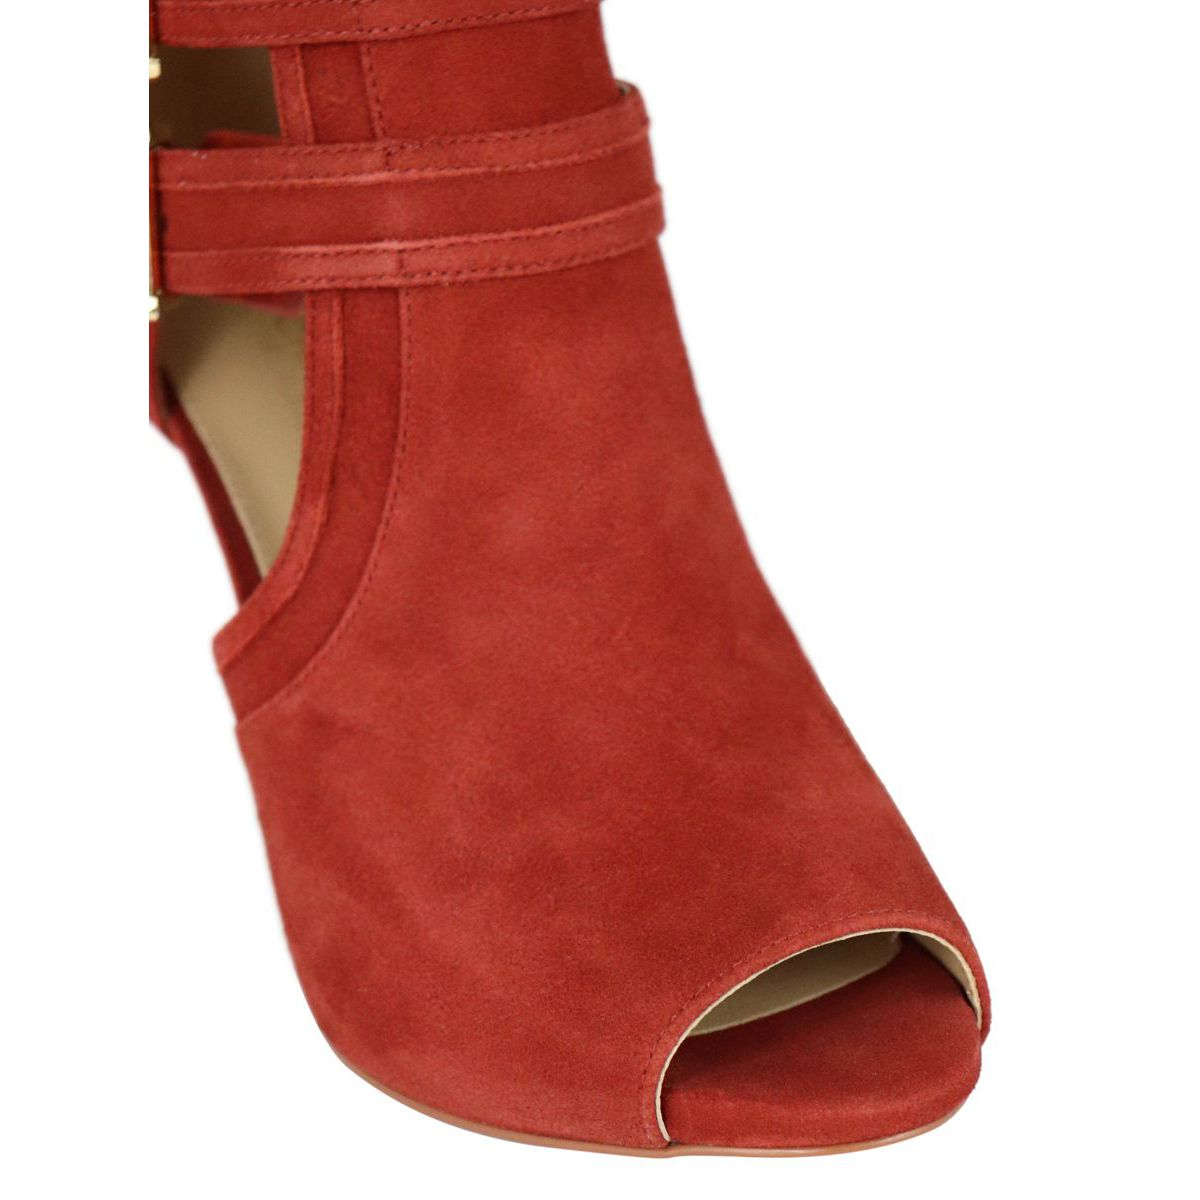 Blaze Open Toe suede ankle boots with buckles Rust Michael Kors